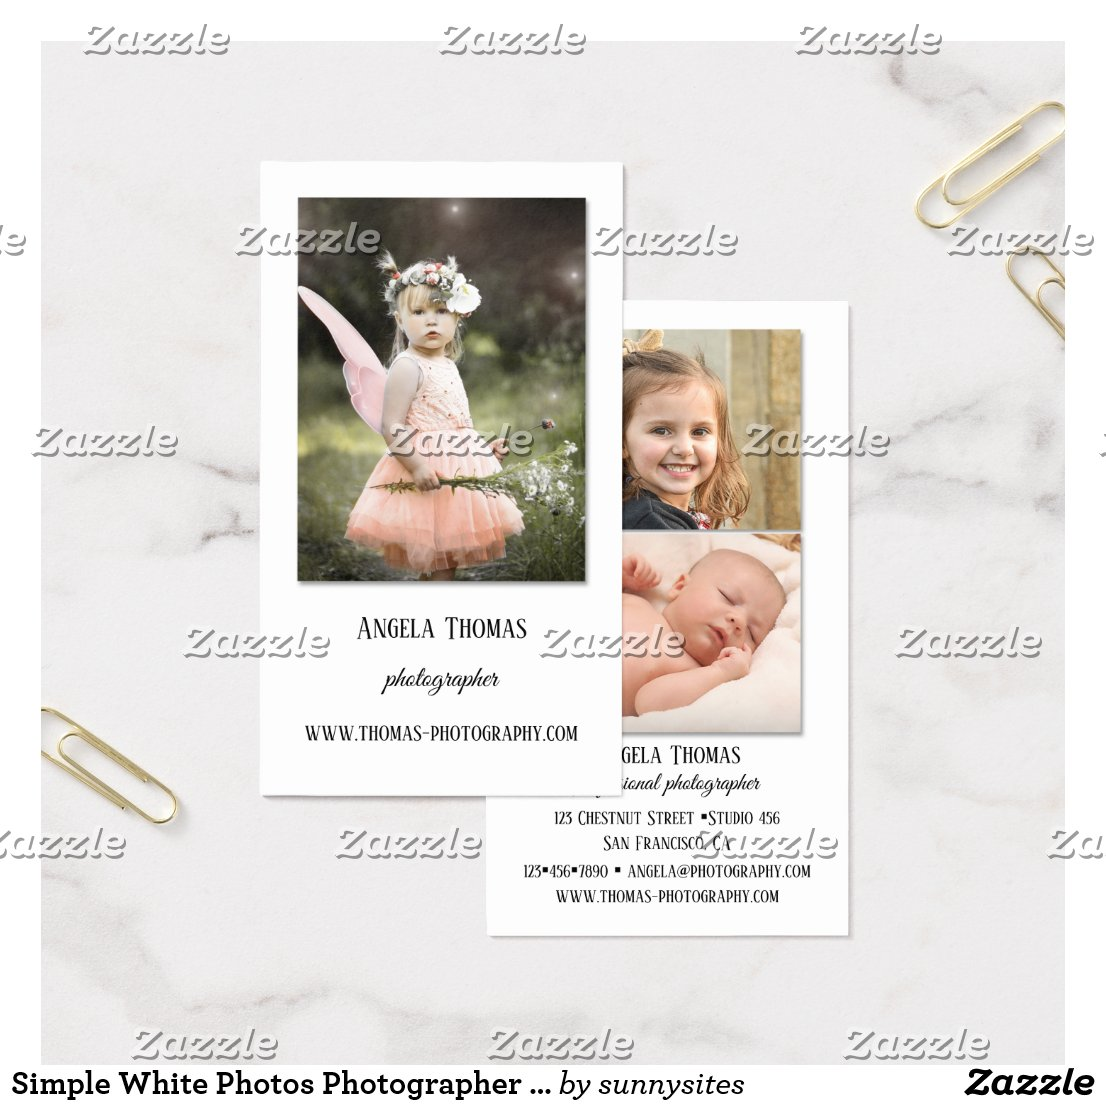 Simple White Photos Photographer Business Card